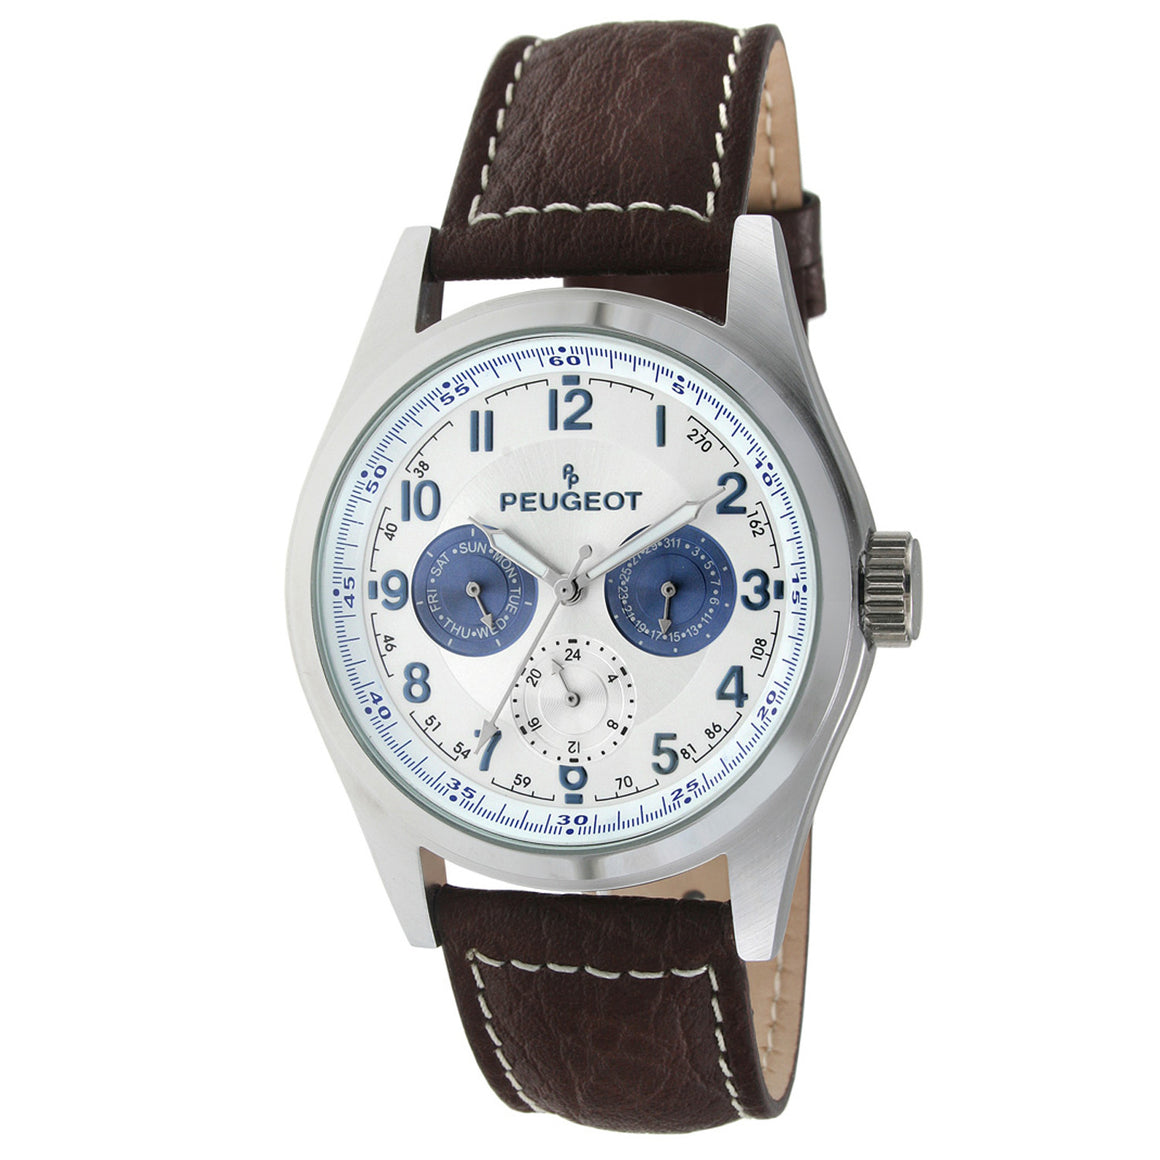 98a586179de Multi-Function Leather Watch - Brown